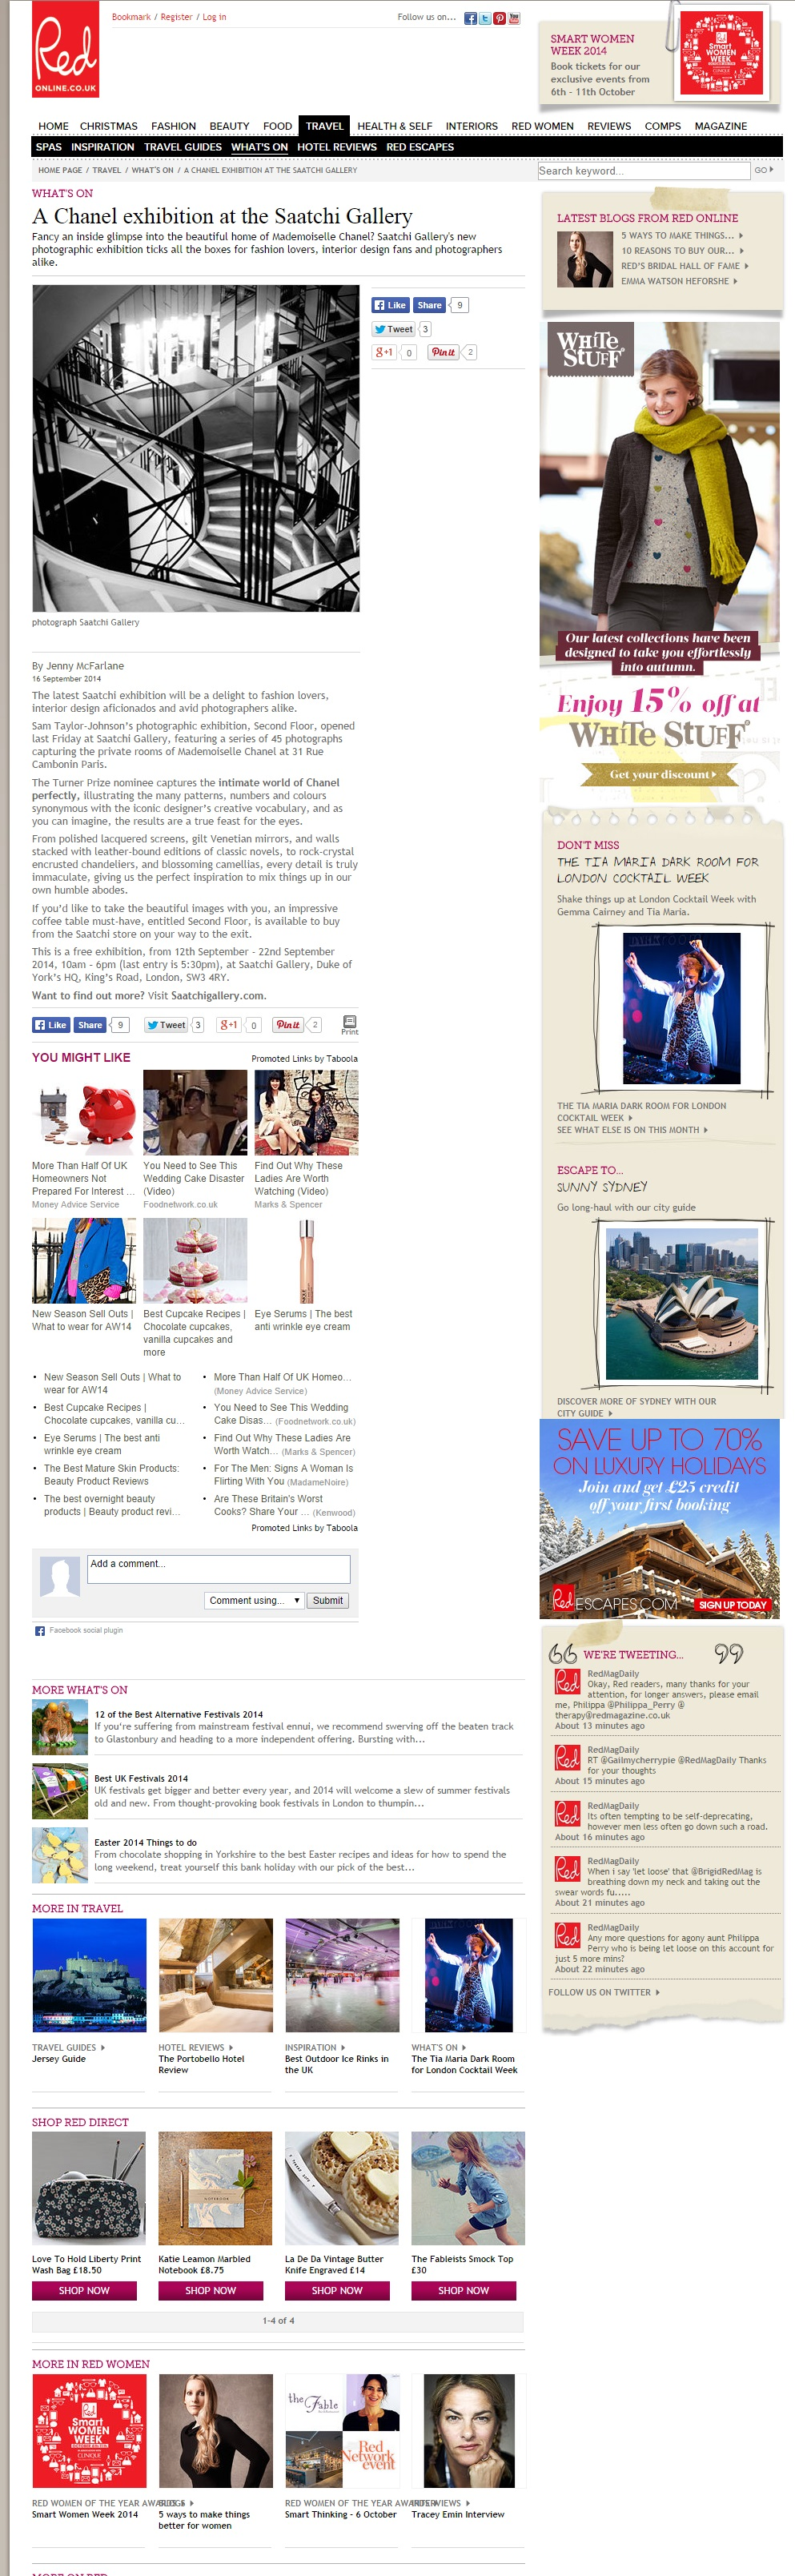 screencapture-www-redonline-co-uk-travel-what-s-on-a-chanel-exhibition-at-the-saatchi-gallery